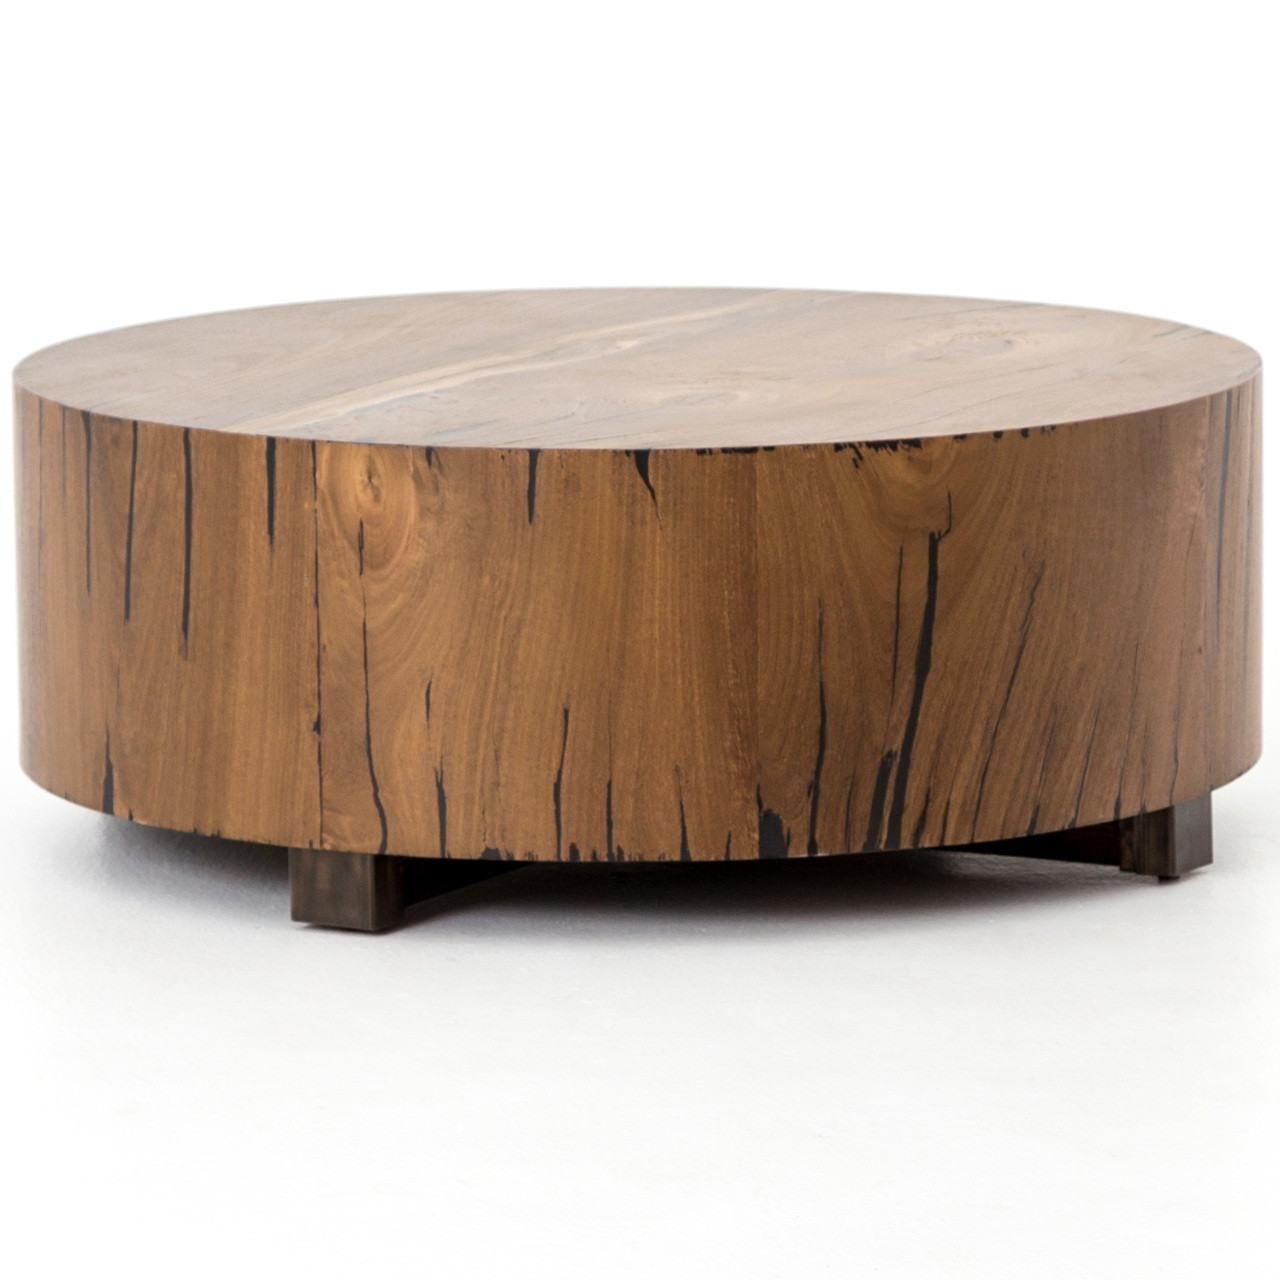 Delicieux Hudson Round Natural Wood Block Coffee Table